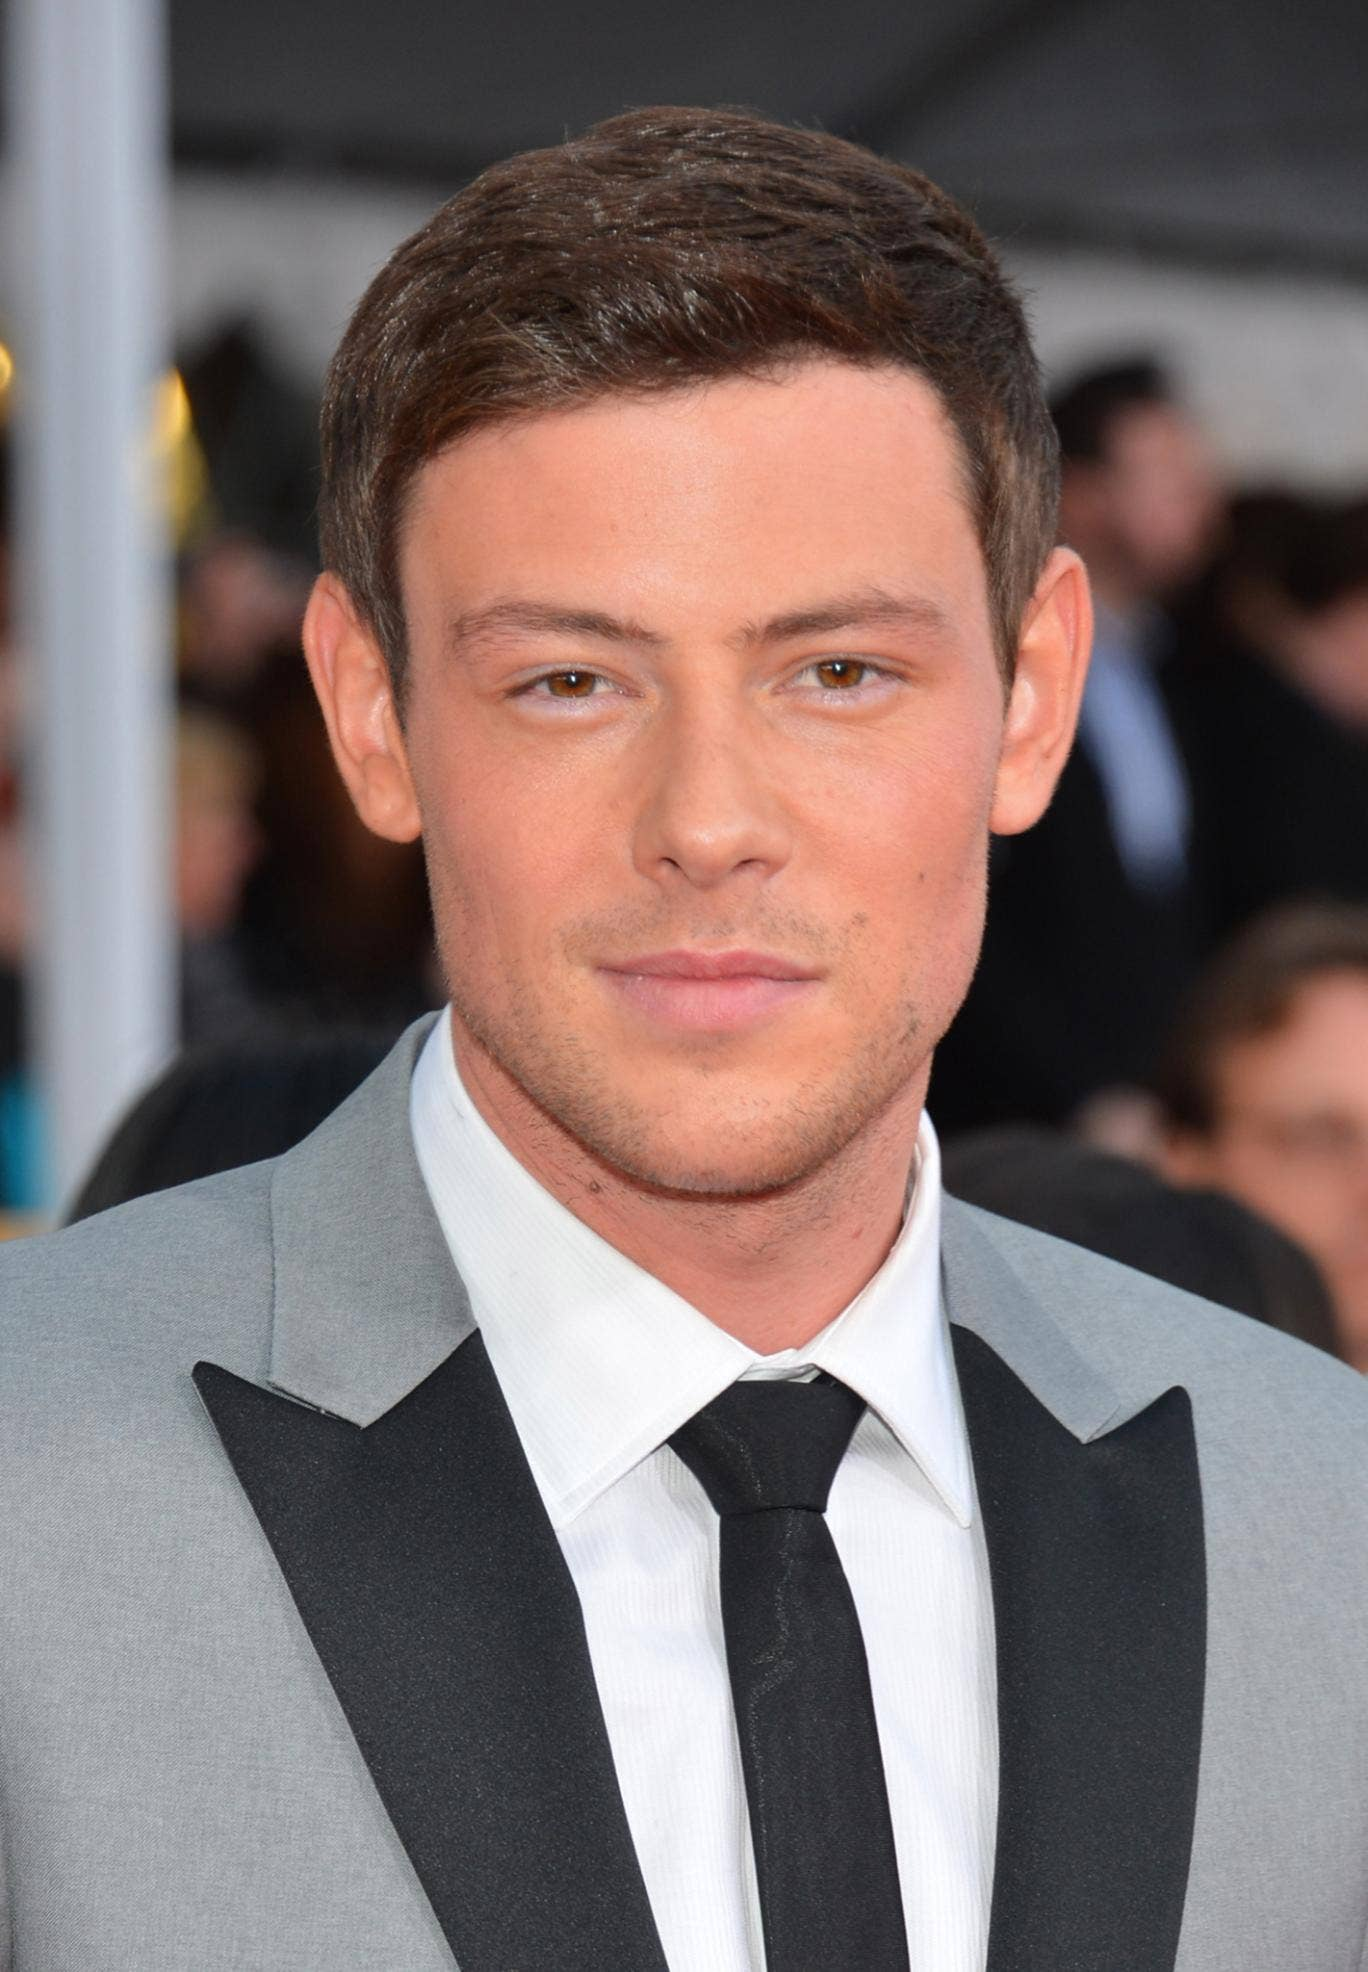 Cory Monteith who plays Finn in Glee